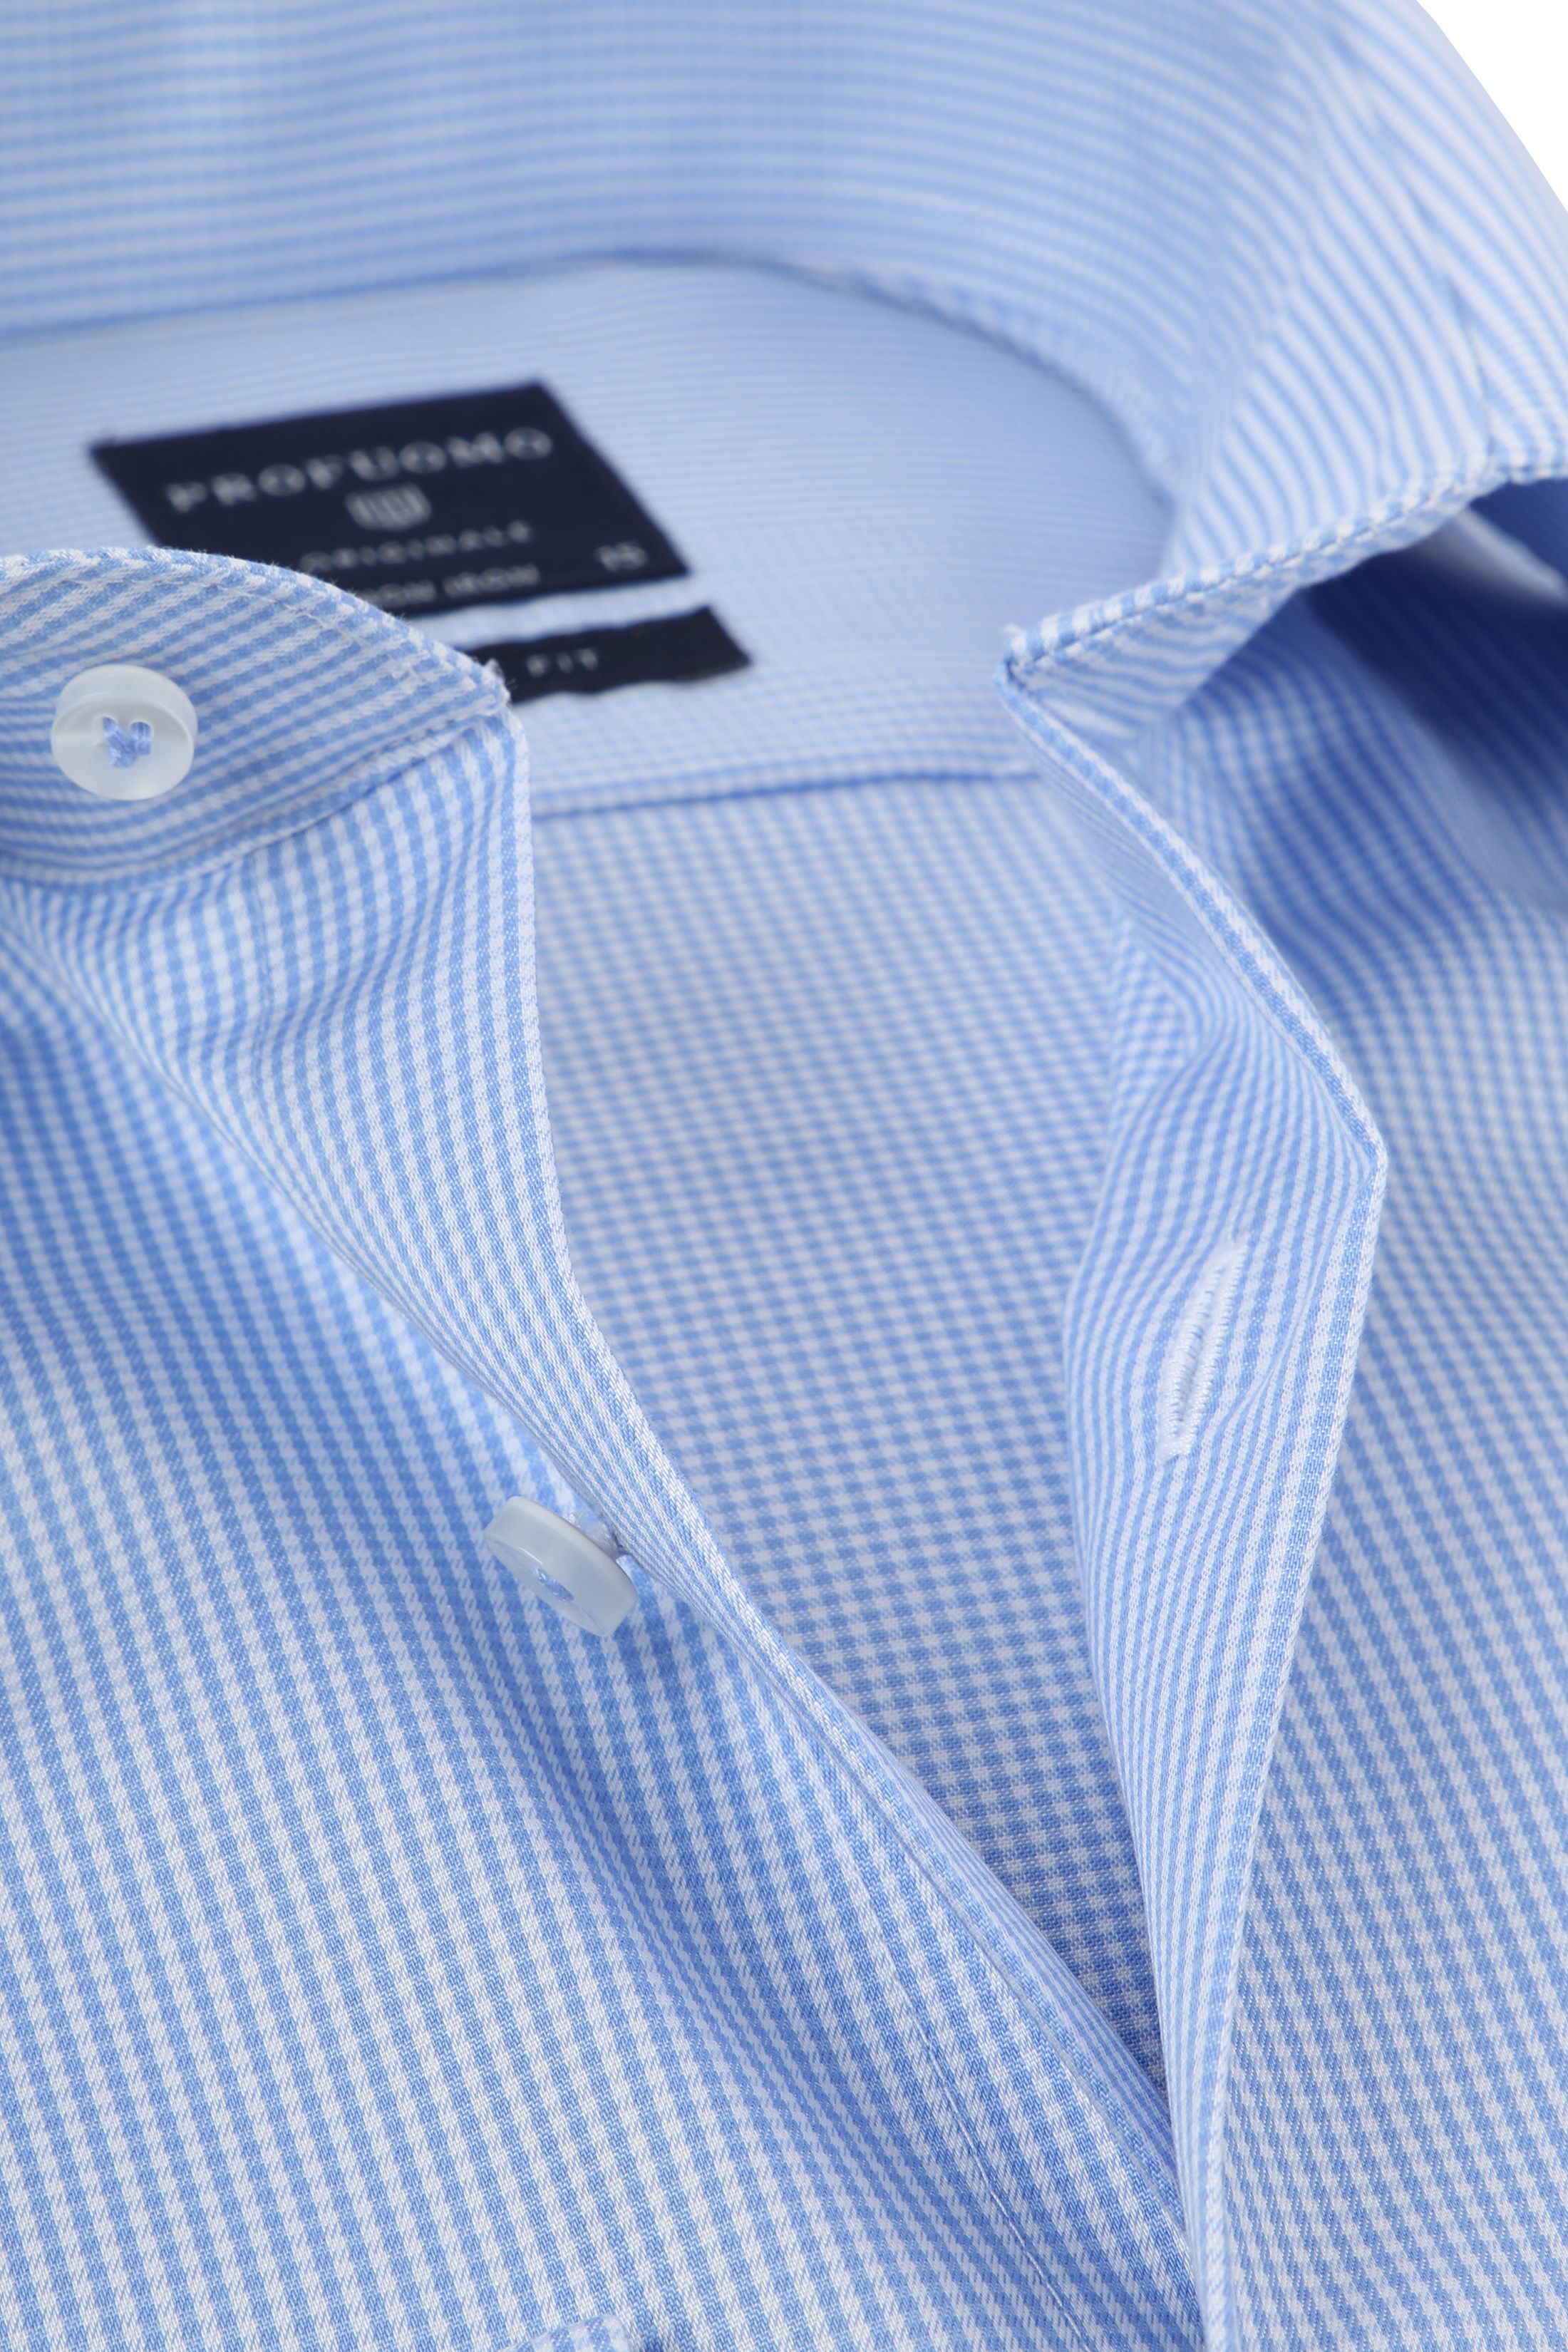 Profuomo Hemd Cutaway Blue Checks foto 1